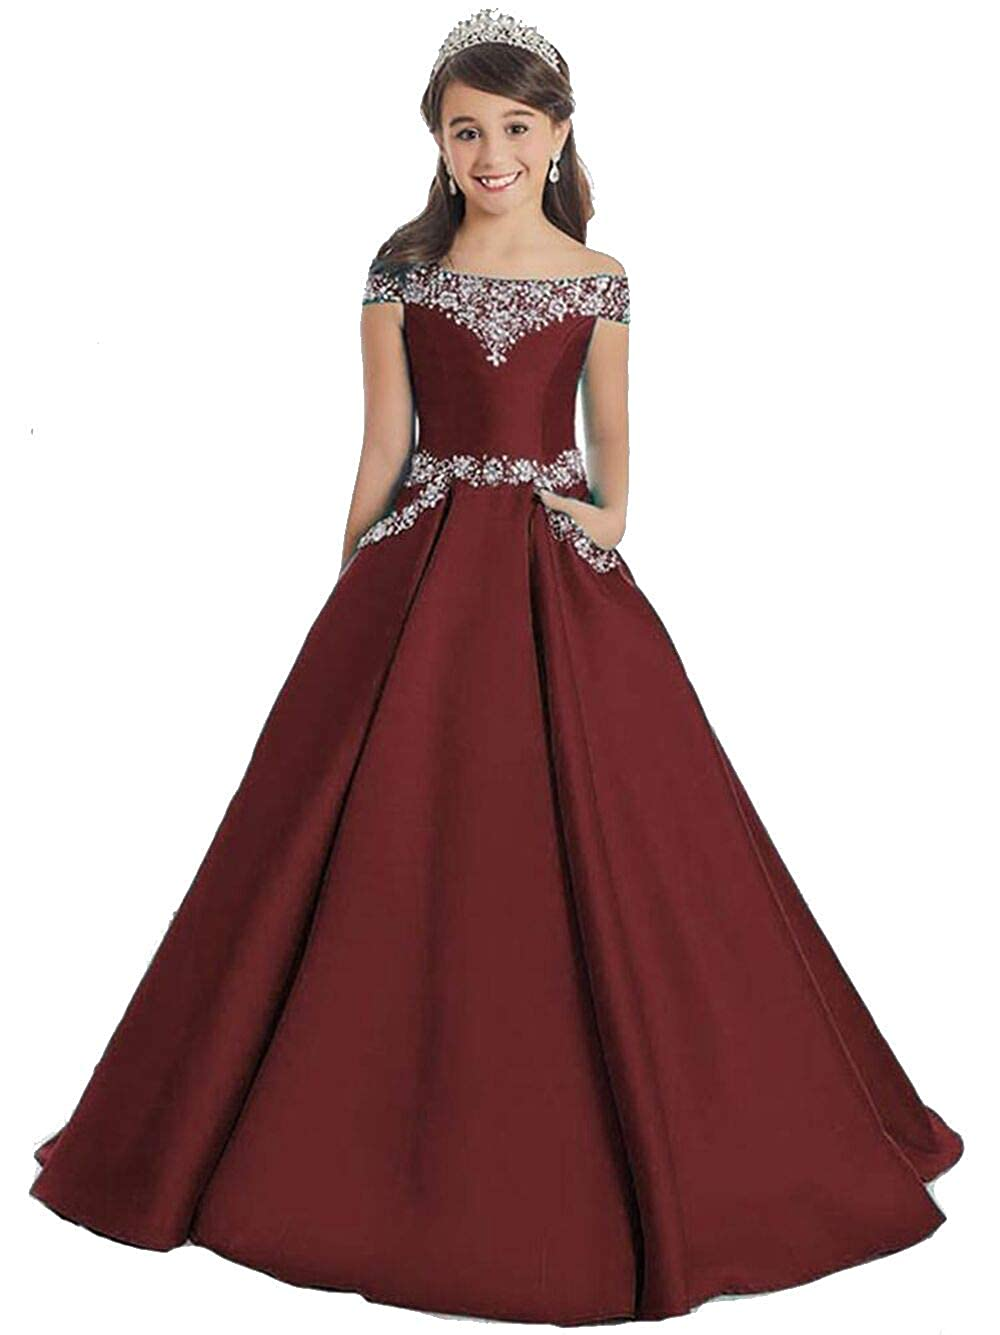 0d8e42272879 Amazon.com: Girls Off The Shoulder A Line Pageant Dresses with Pockets Formal  Dresses: Clothing